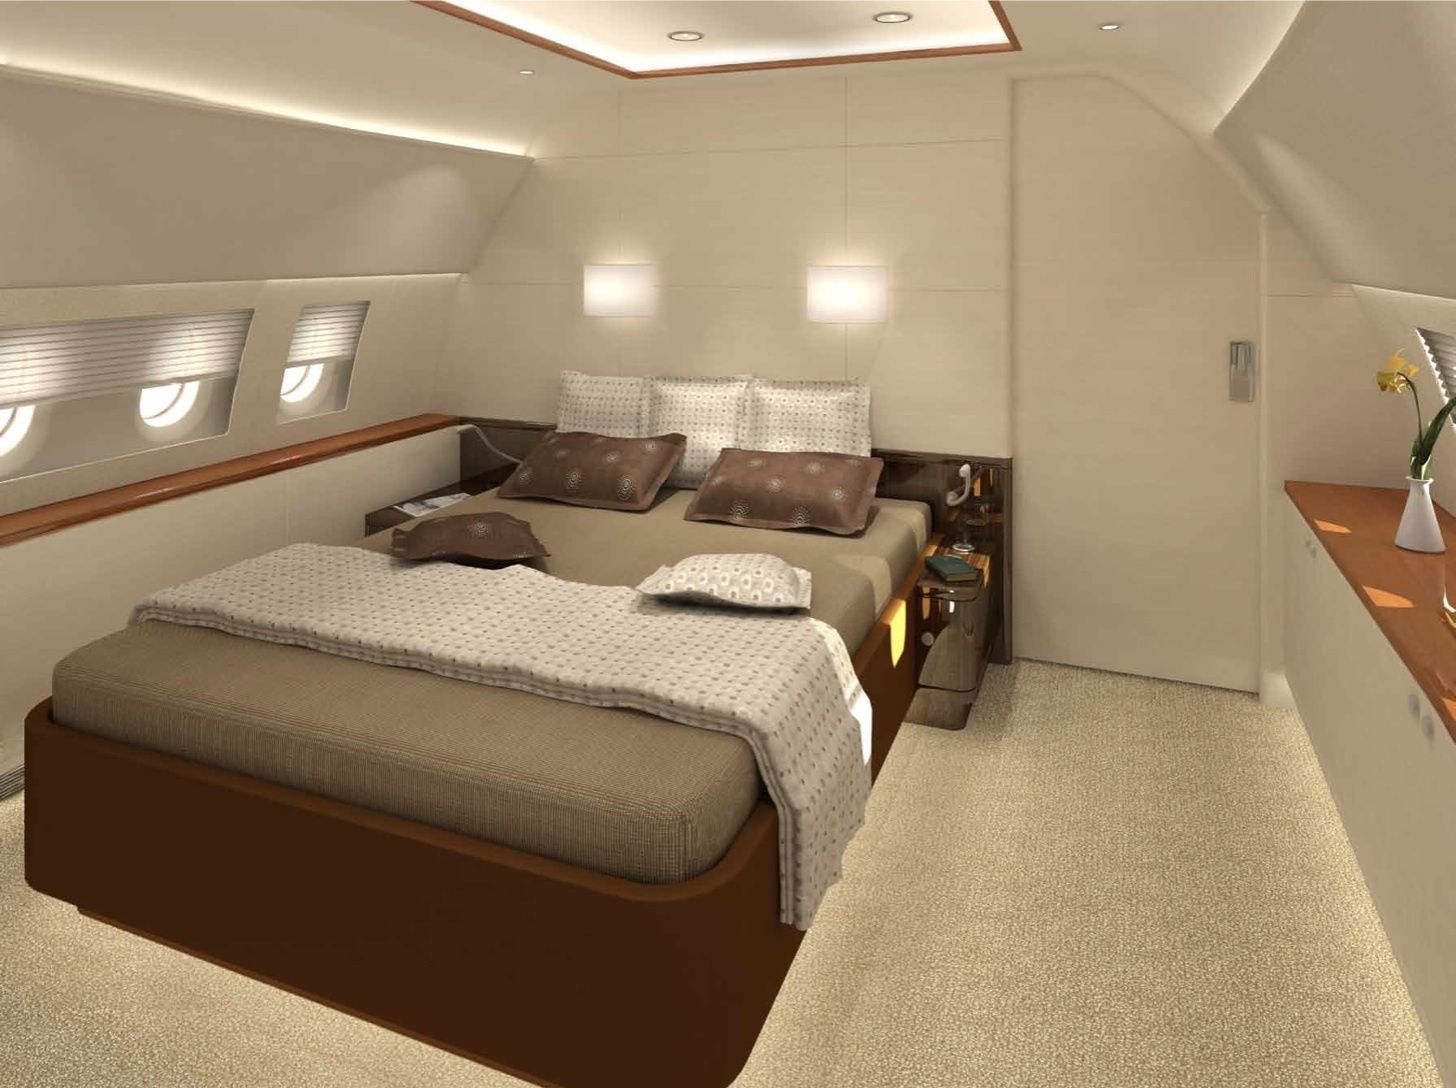 Airplane Bedrooms Private Jet Interior Design For Your Flying Mobile Home